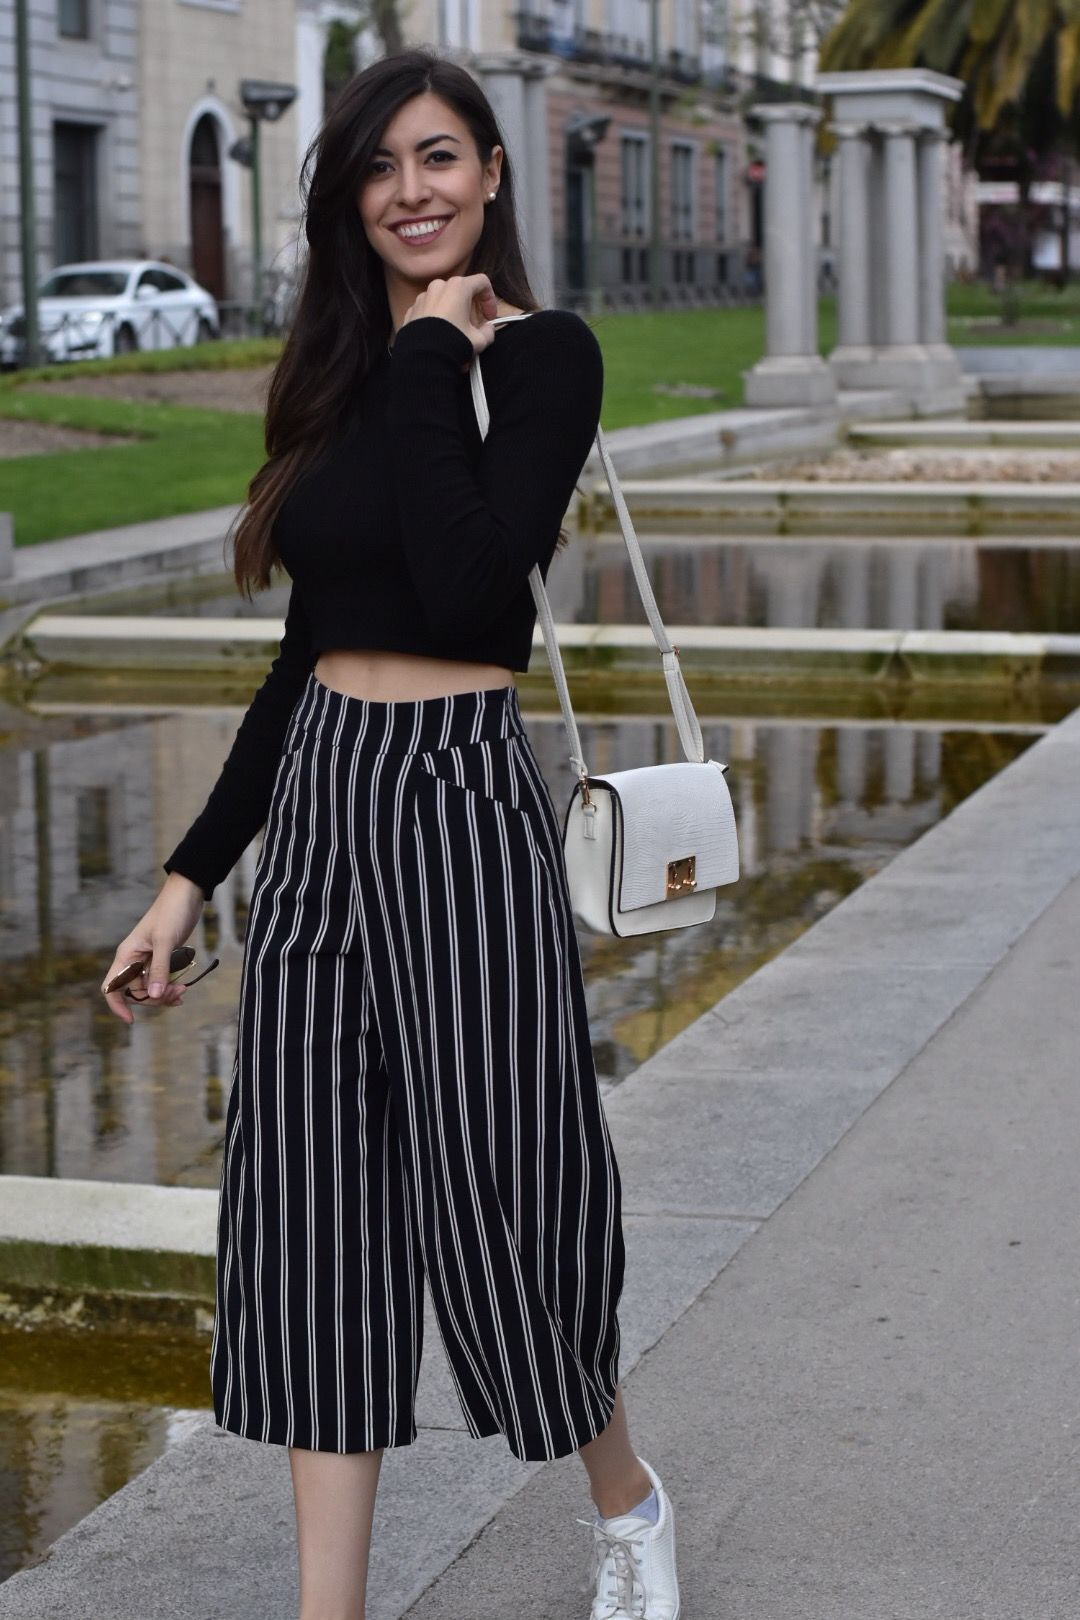 Pin By Milagros Ramos On Cosas Que Ponerse Square Pants Outfit Casual Fashion Fashion Outfits